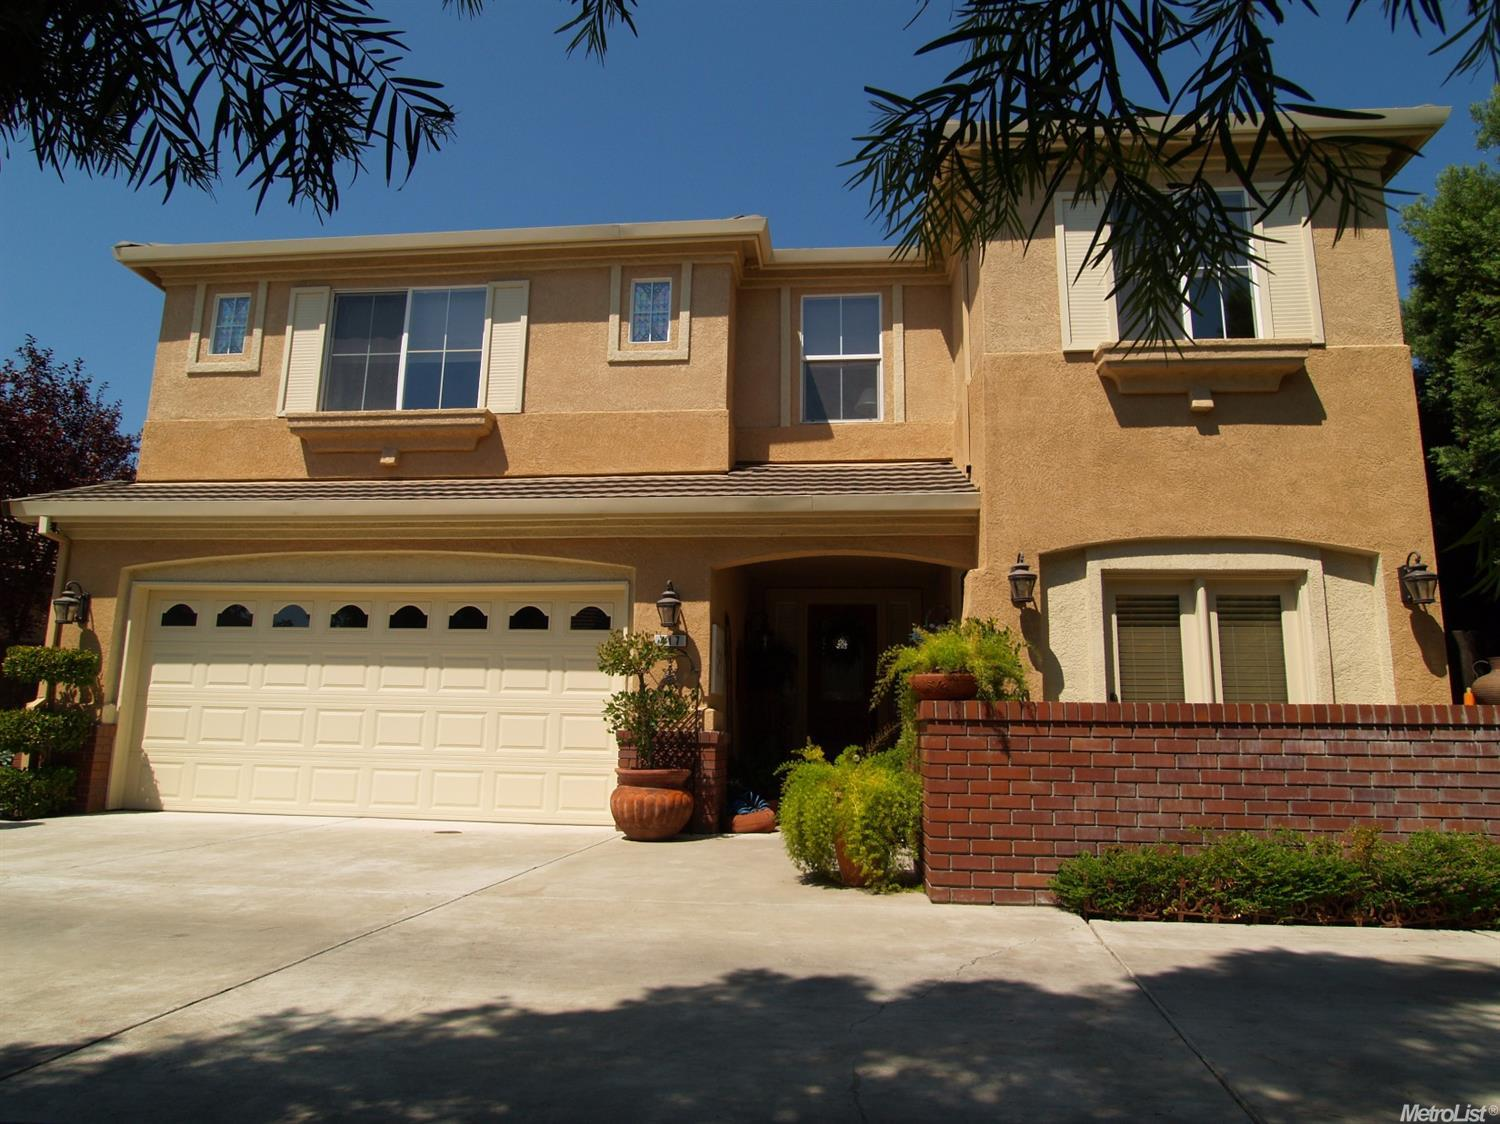 417 The Cove, Modesto, CA 95355